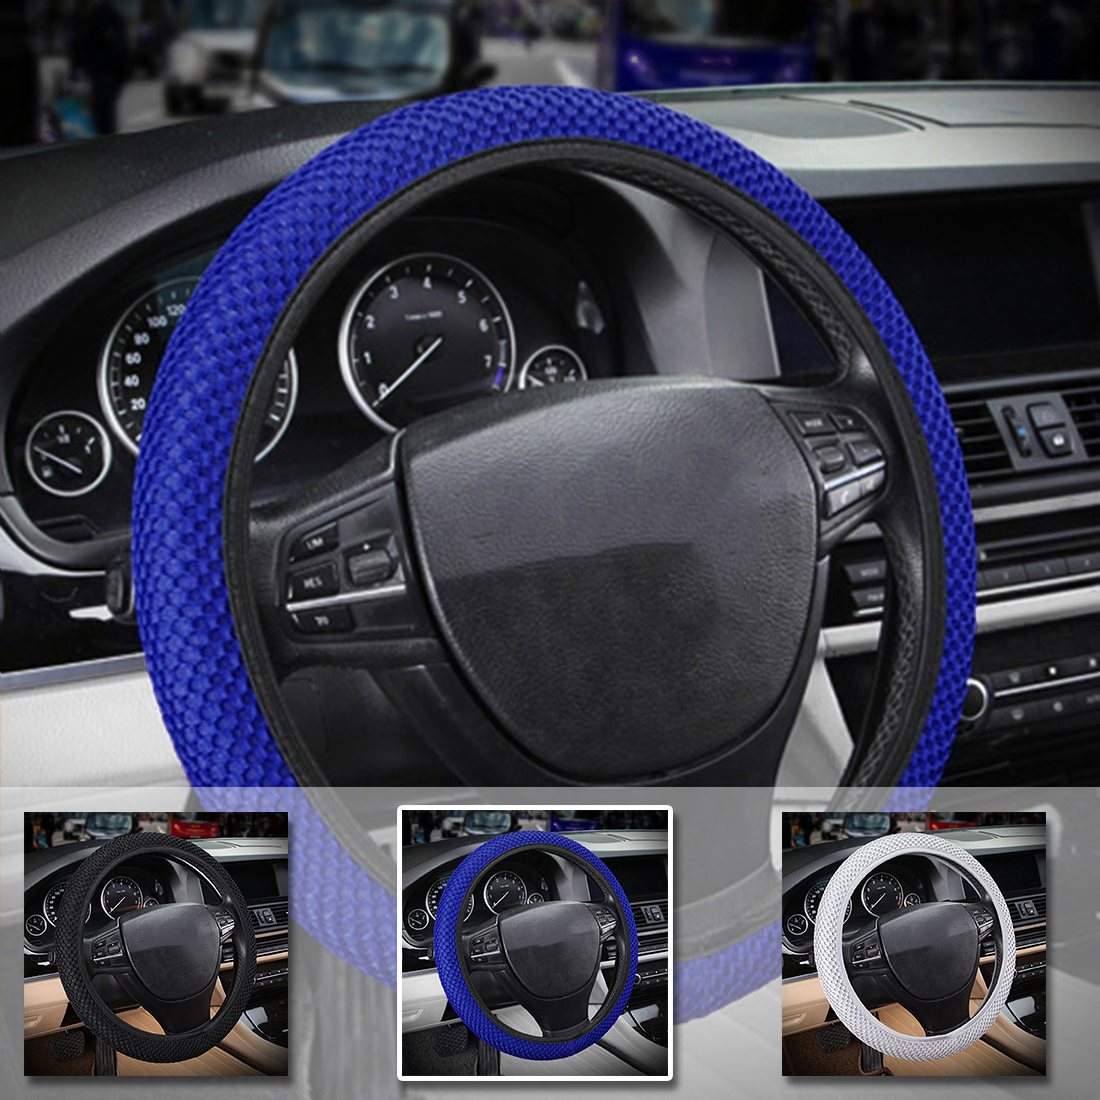 Dewtreetali Universal Car Steering Wheel Cover Breathable Sandwich Fabric Steering Wheel Protector Auto Decoration Car Styling ice silk 38cm universal car steering wheel cover breathable car styling sport auto steering wheel covers automotive accessories